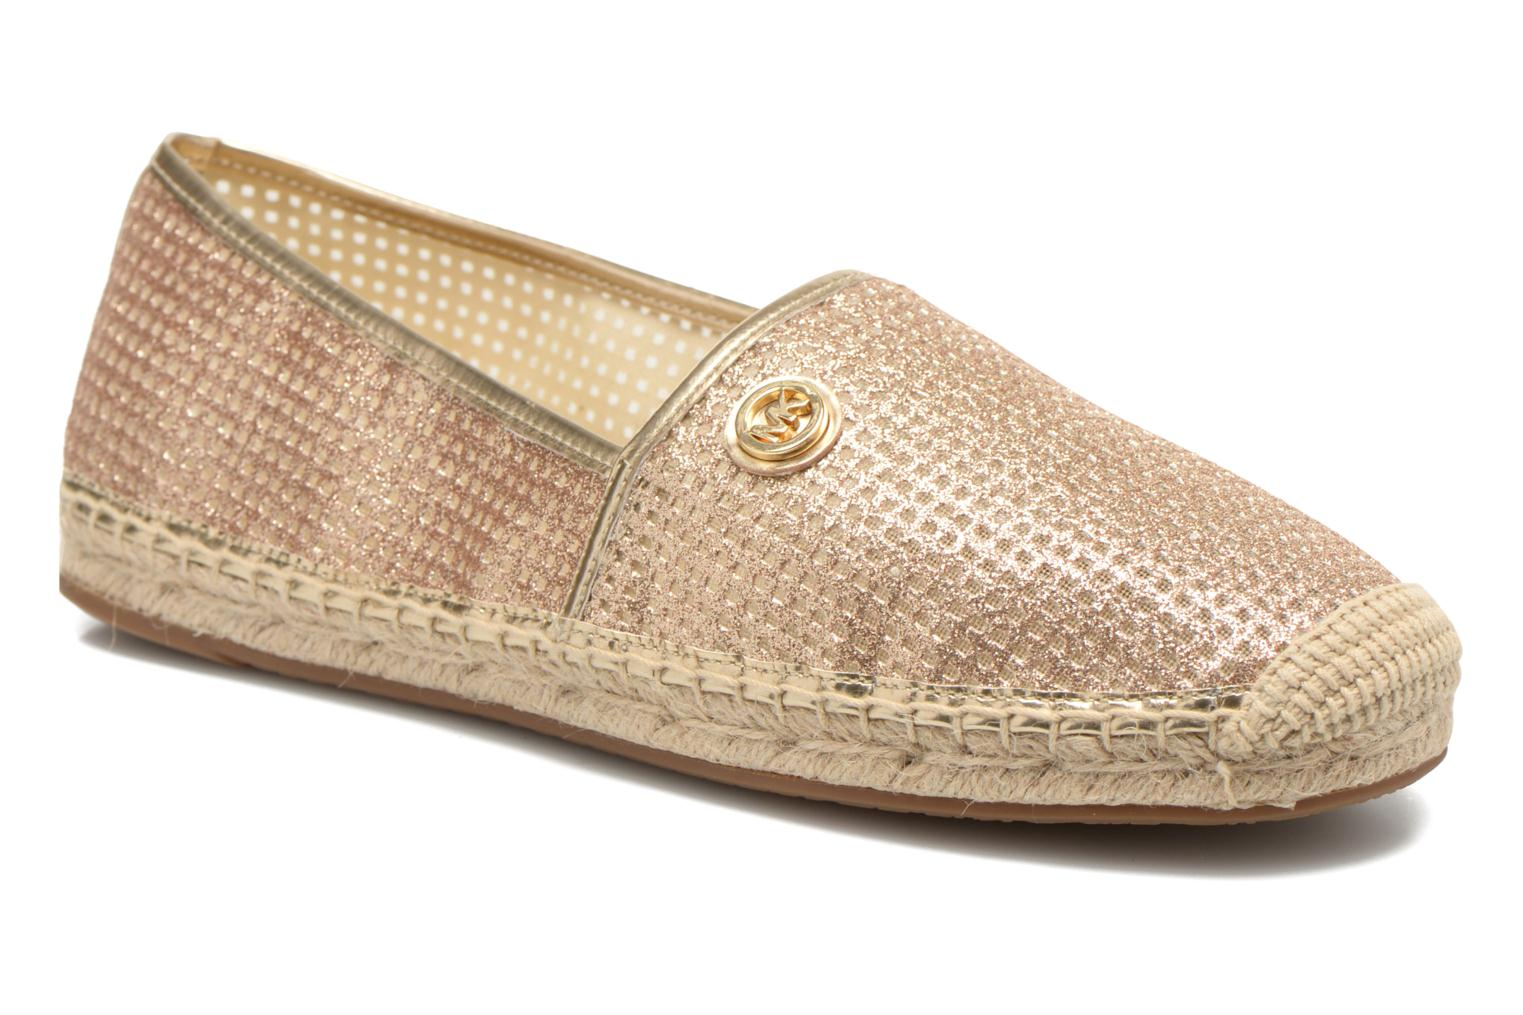 Espadrilles Kendrick slip on by Michael Michael Kors